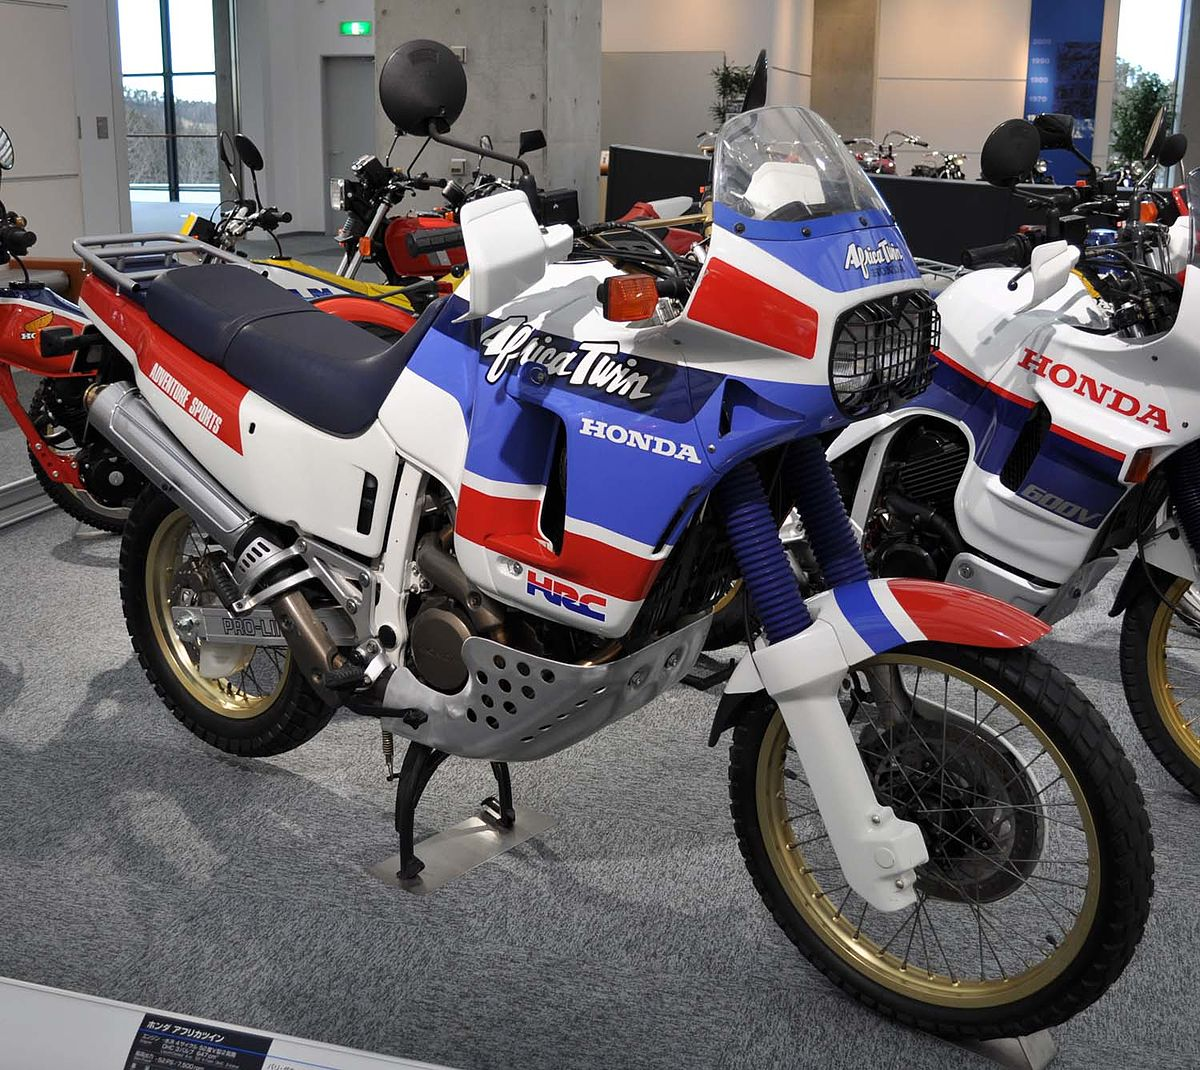 Where Is Honda Made >> Honda Africa Twin - Wikipedia